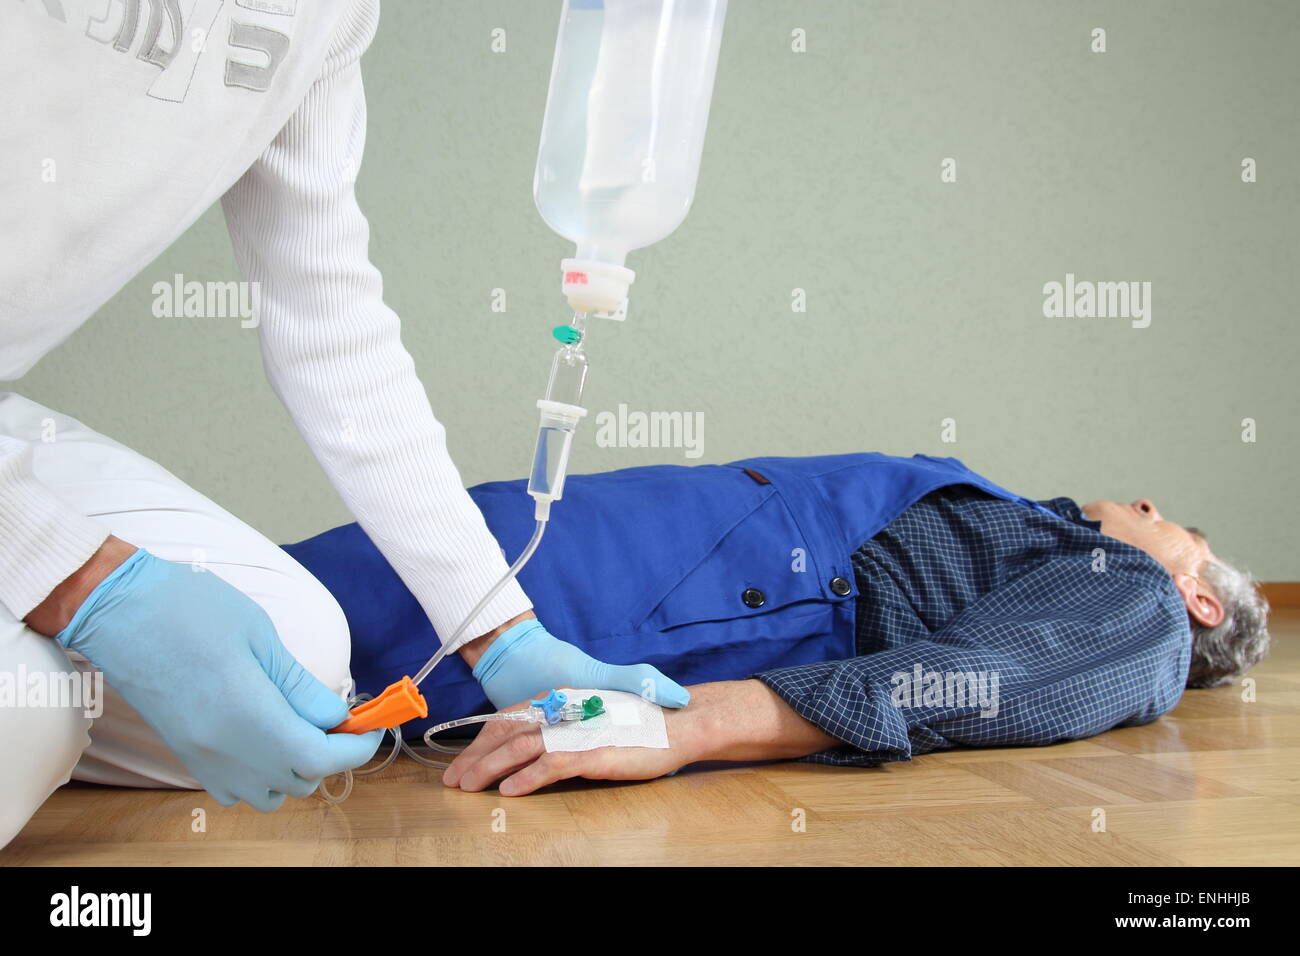 A Emergency service giving a infusion to a patient - Stock Image